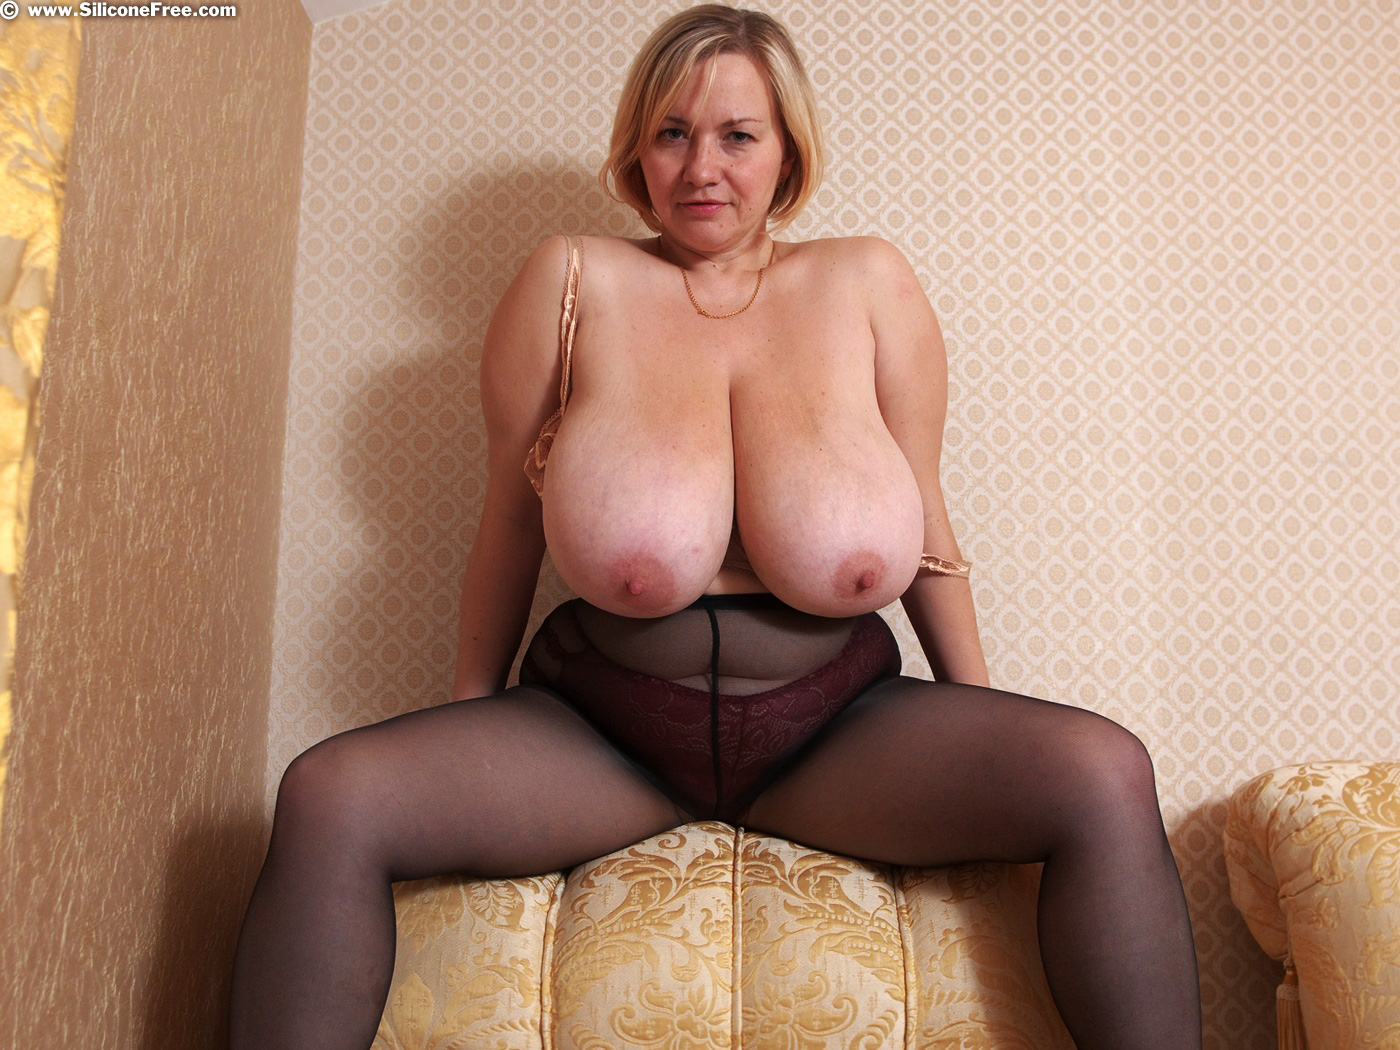 Big breast archievess live sex video chat with hot cam girls